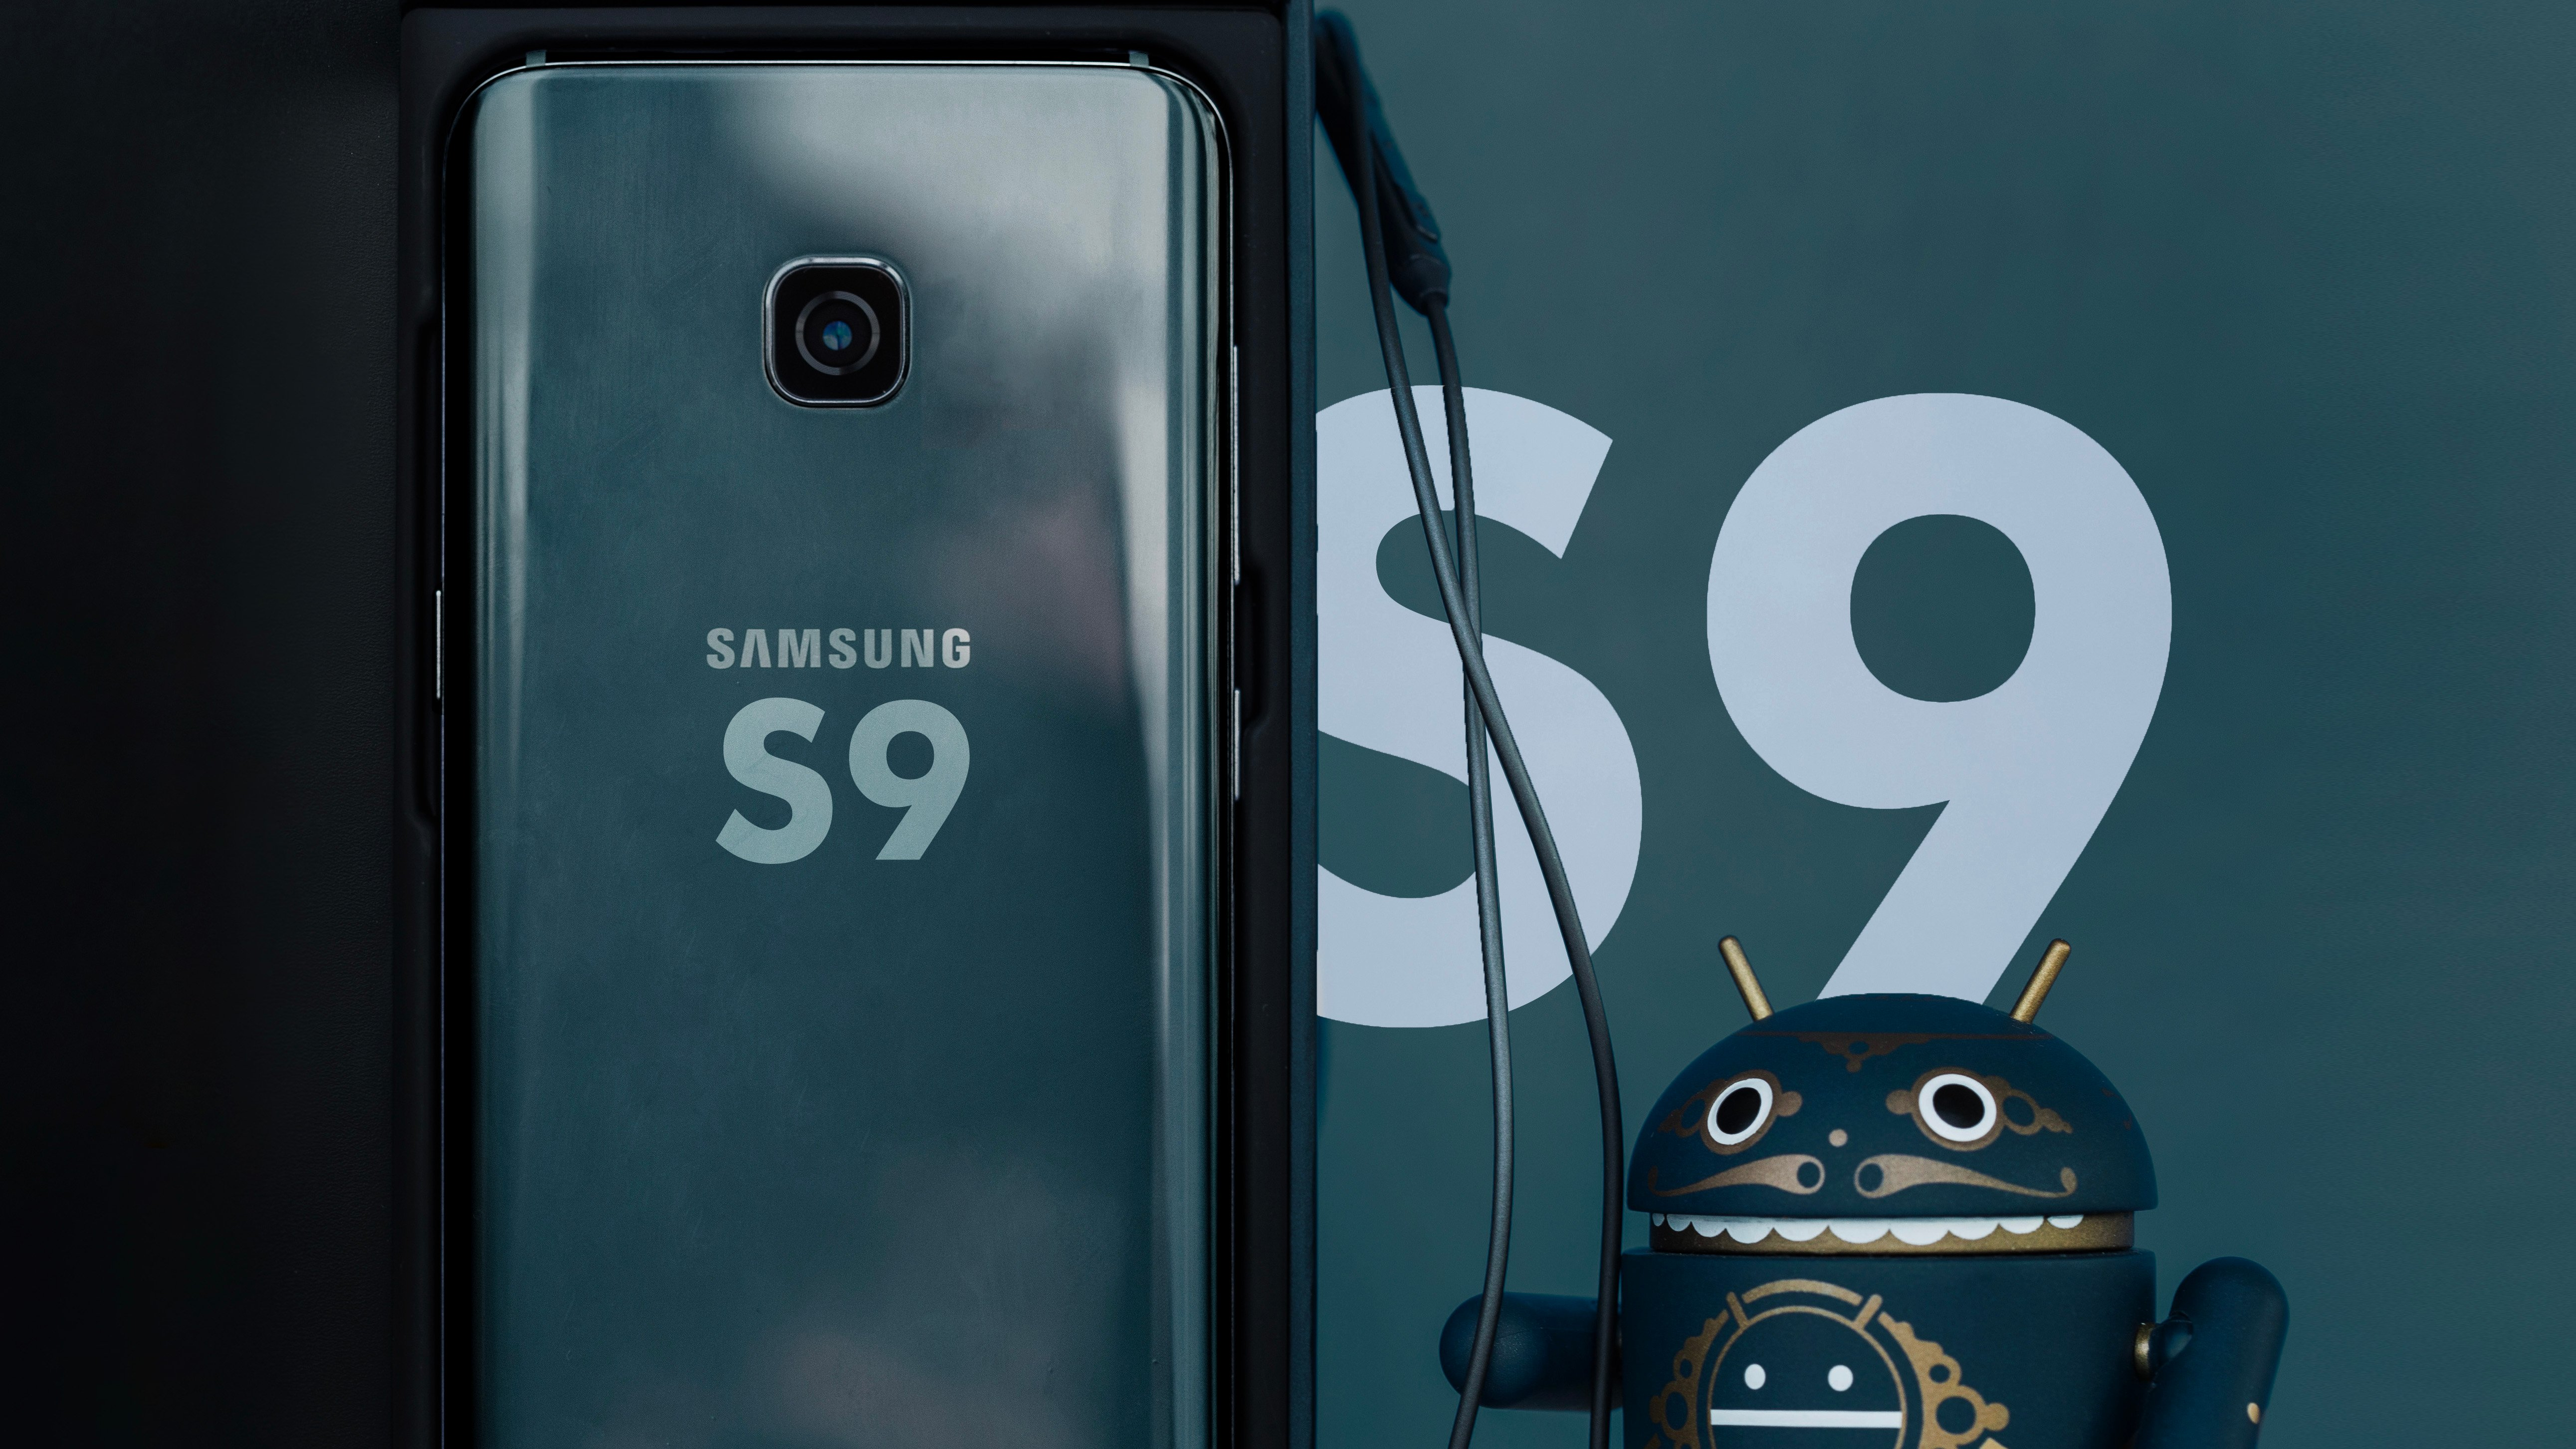 samsung 39 s galaxy s9 s9 will make an early appearance in january 2018 at ces will be. Black Bedroom Furniture Sets. Home Design Ideas